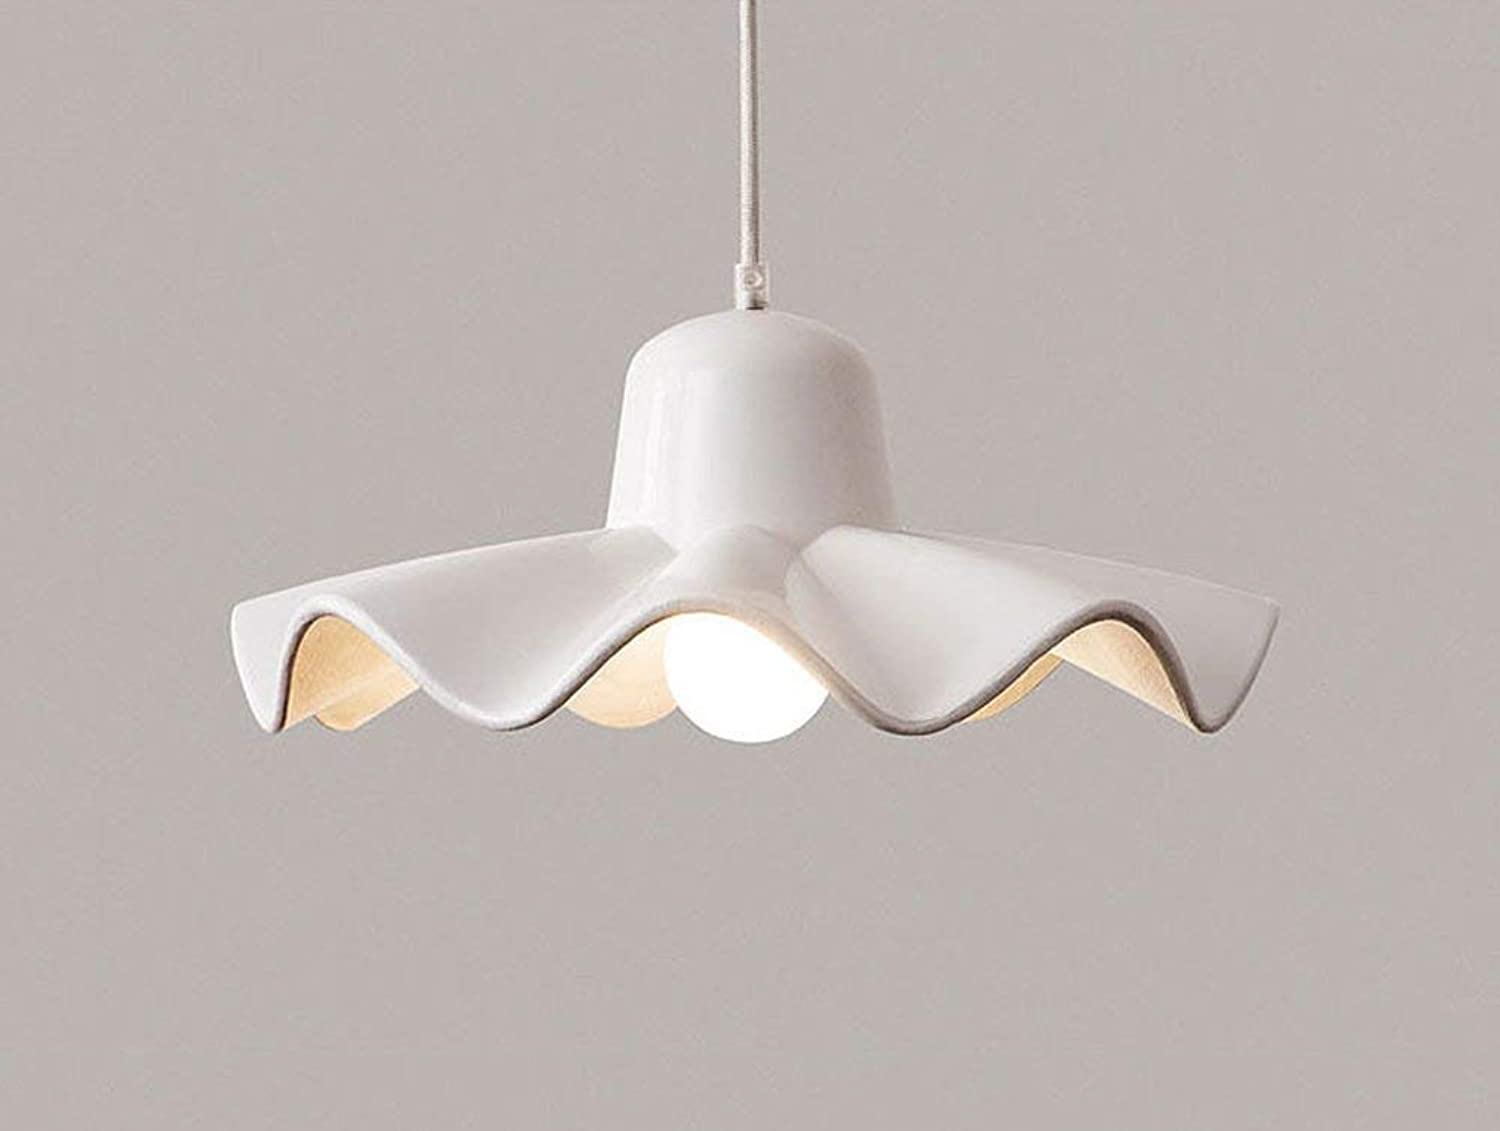 Perfect Home Simple Modern Chandelier Northern Europe Living Room Restaurant Bedroom Bar E27 (color   White, Size   36  16cm) Durable